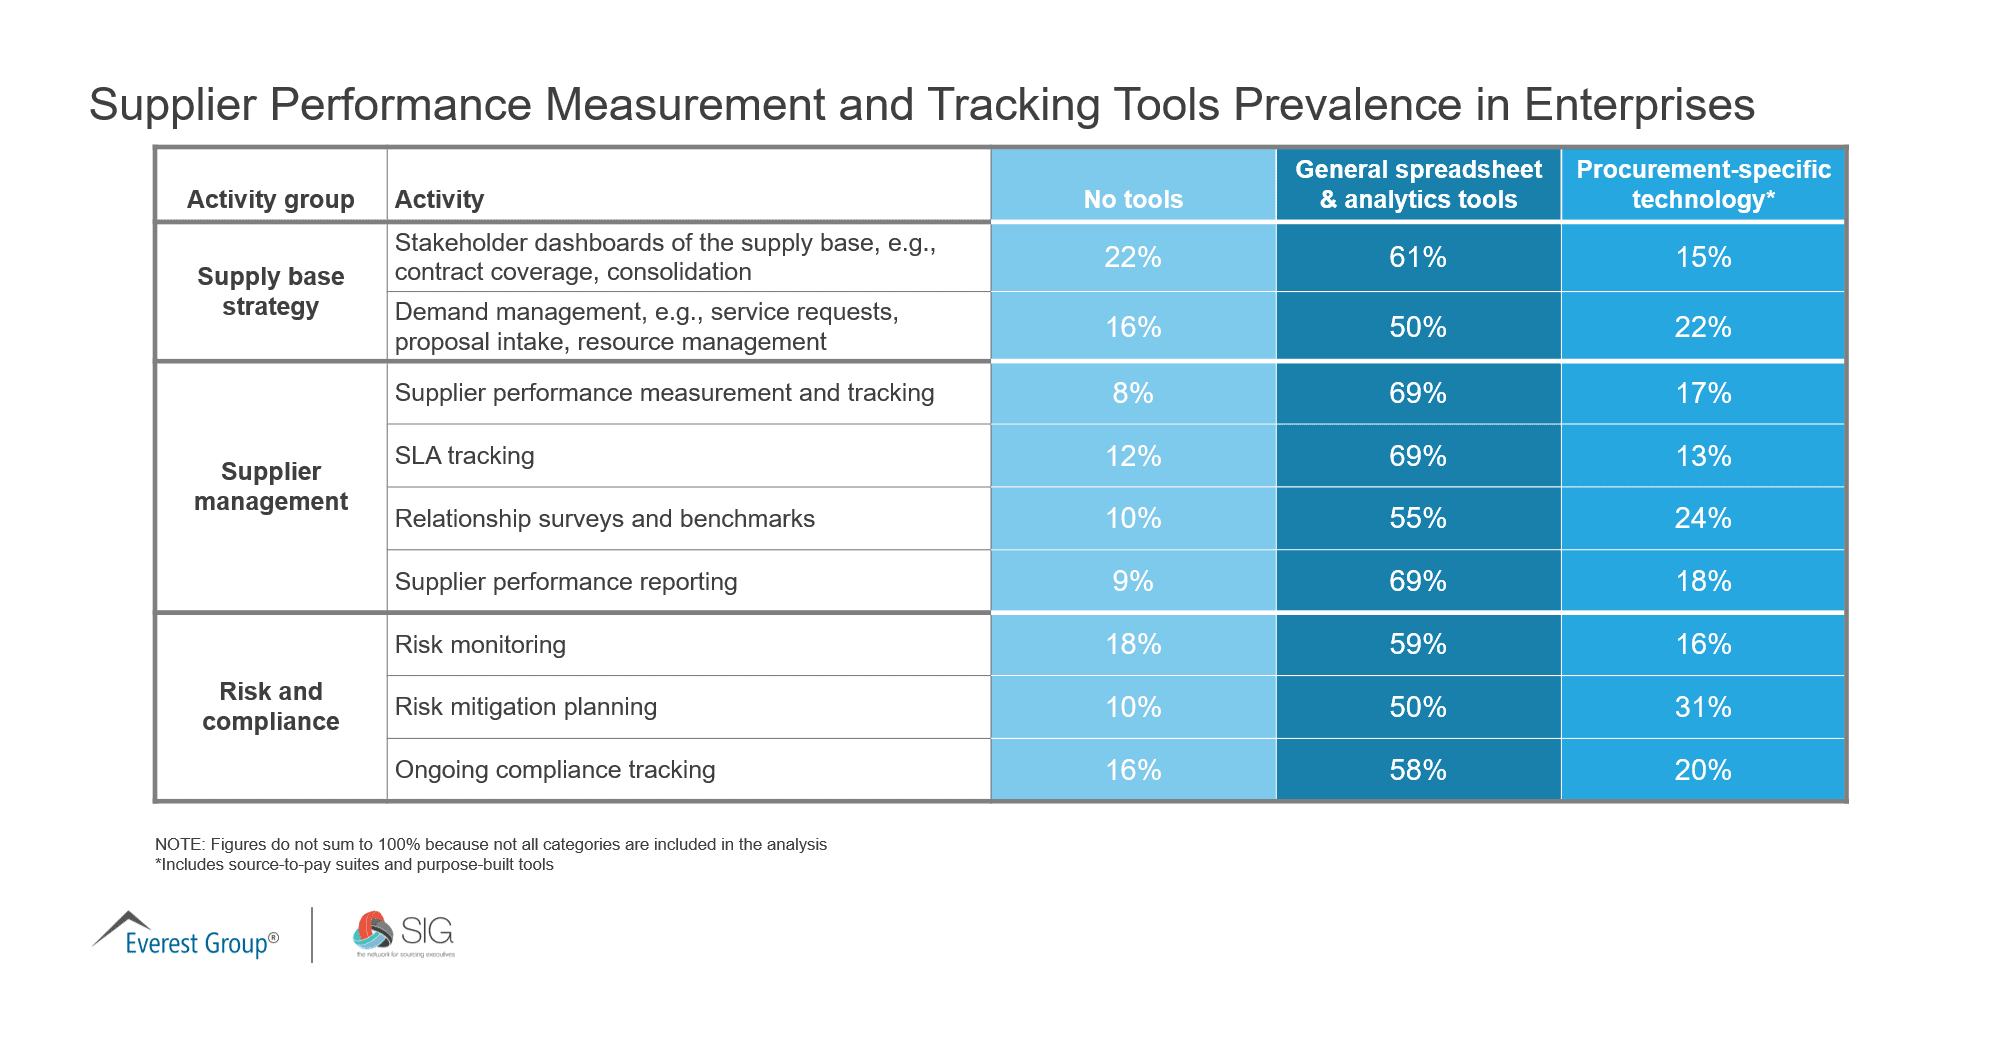 Supplier Performance Measurement and Tracking Tools Prevalence in Enterprises